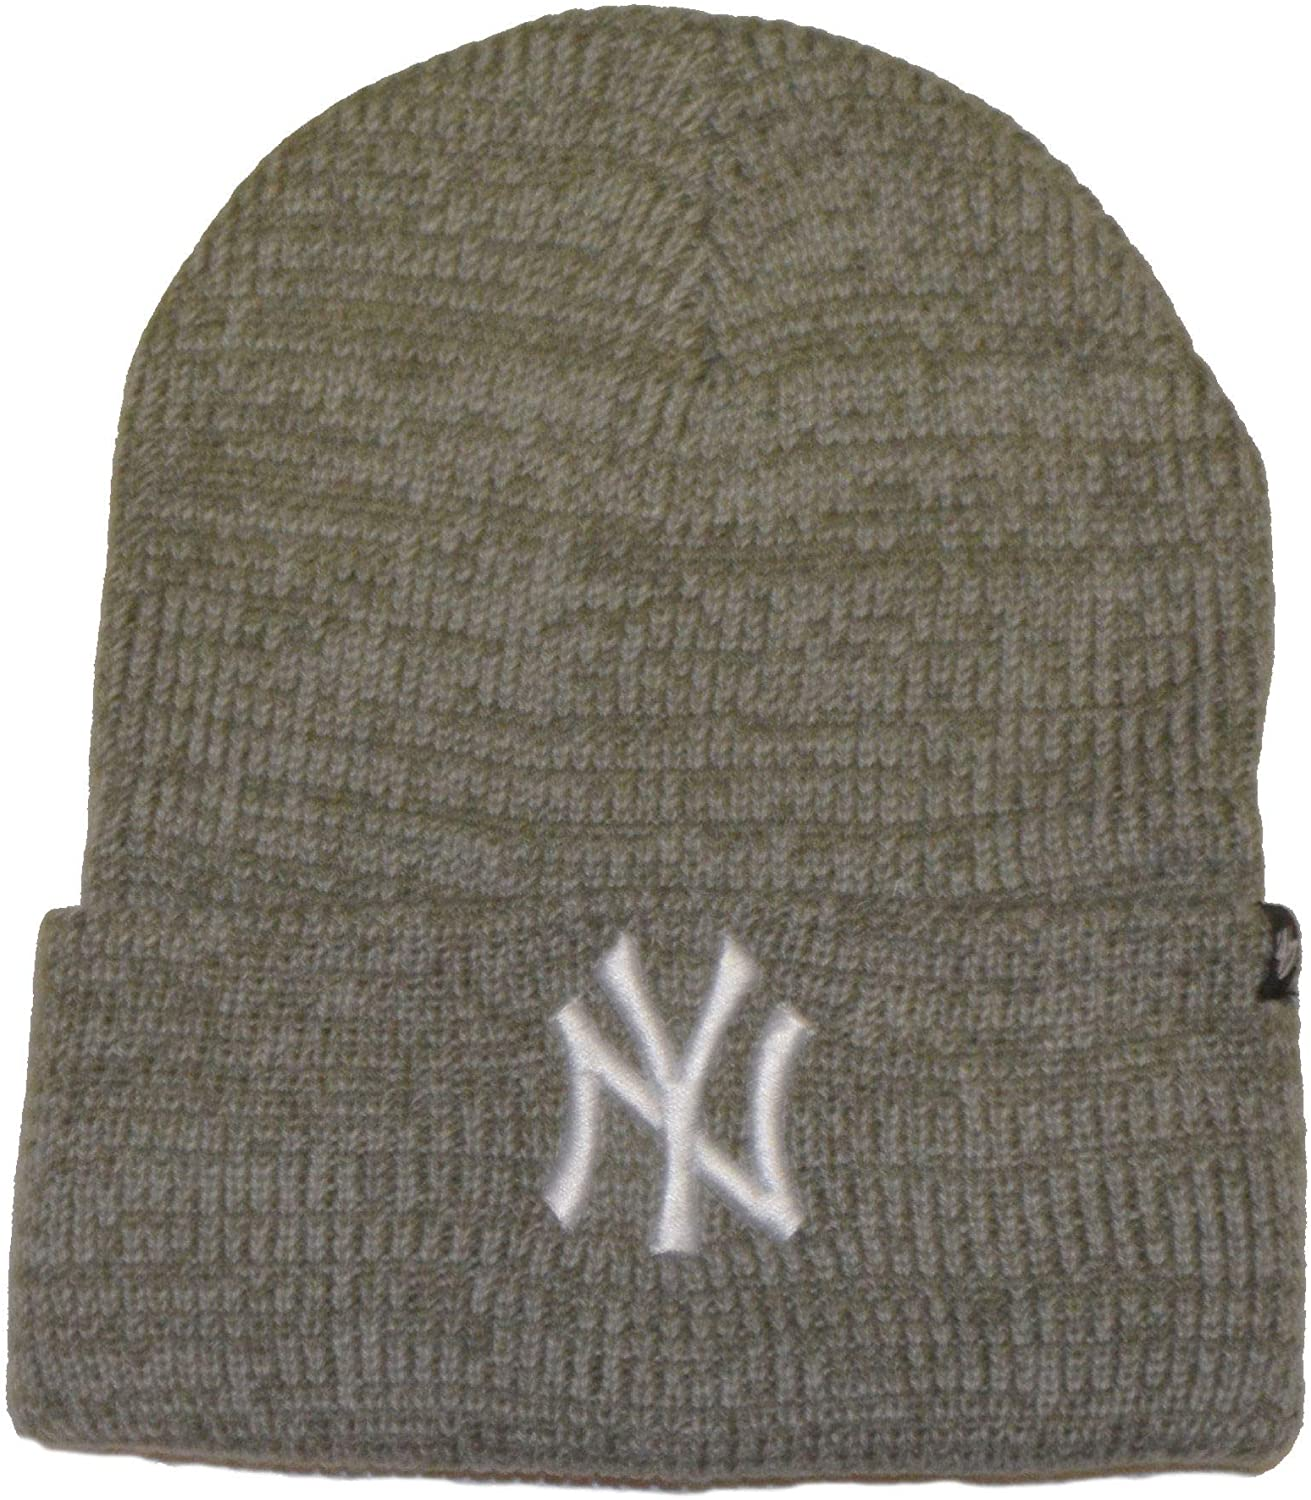 '47 Brand Fashion Cuff Beanie Hat - MLB Premium Cuffed Winter Knit Toque Cap